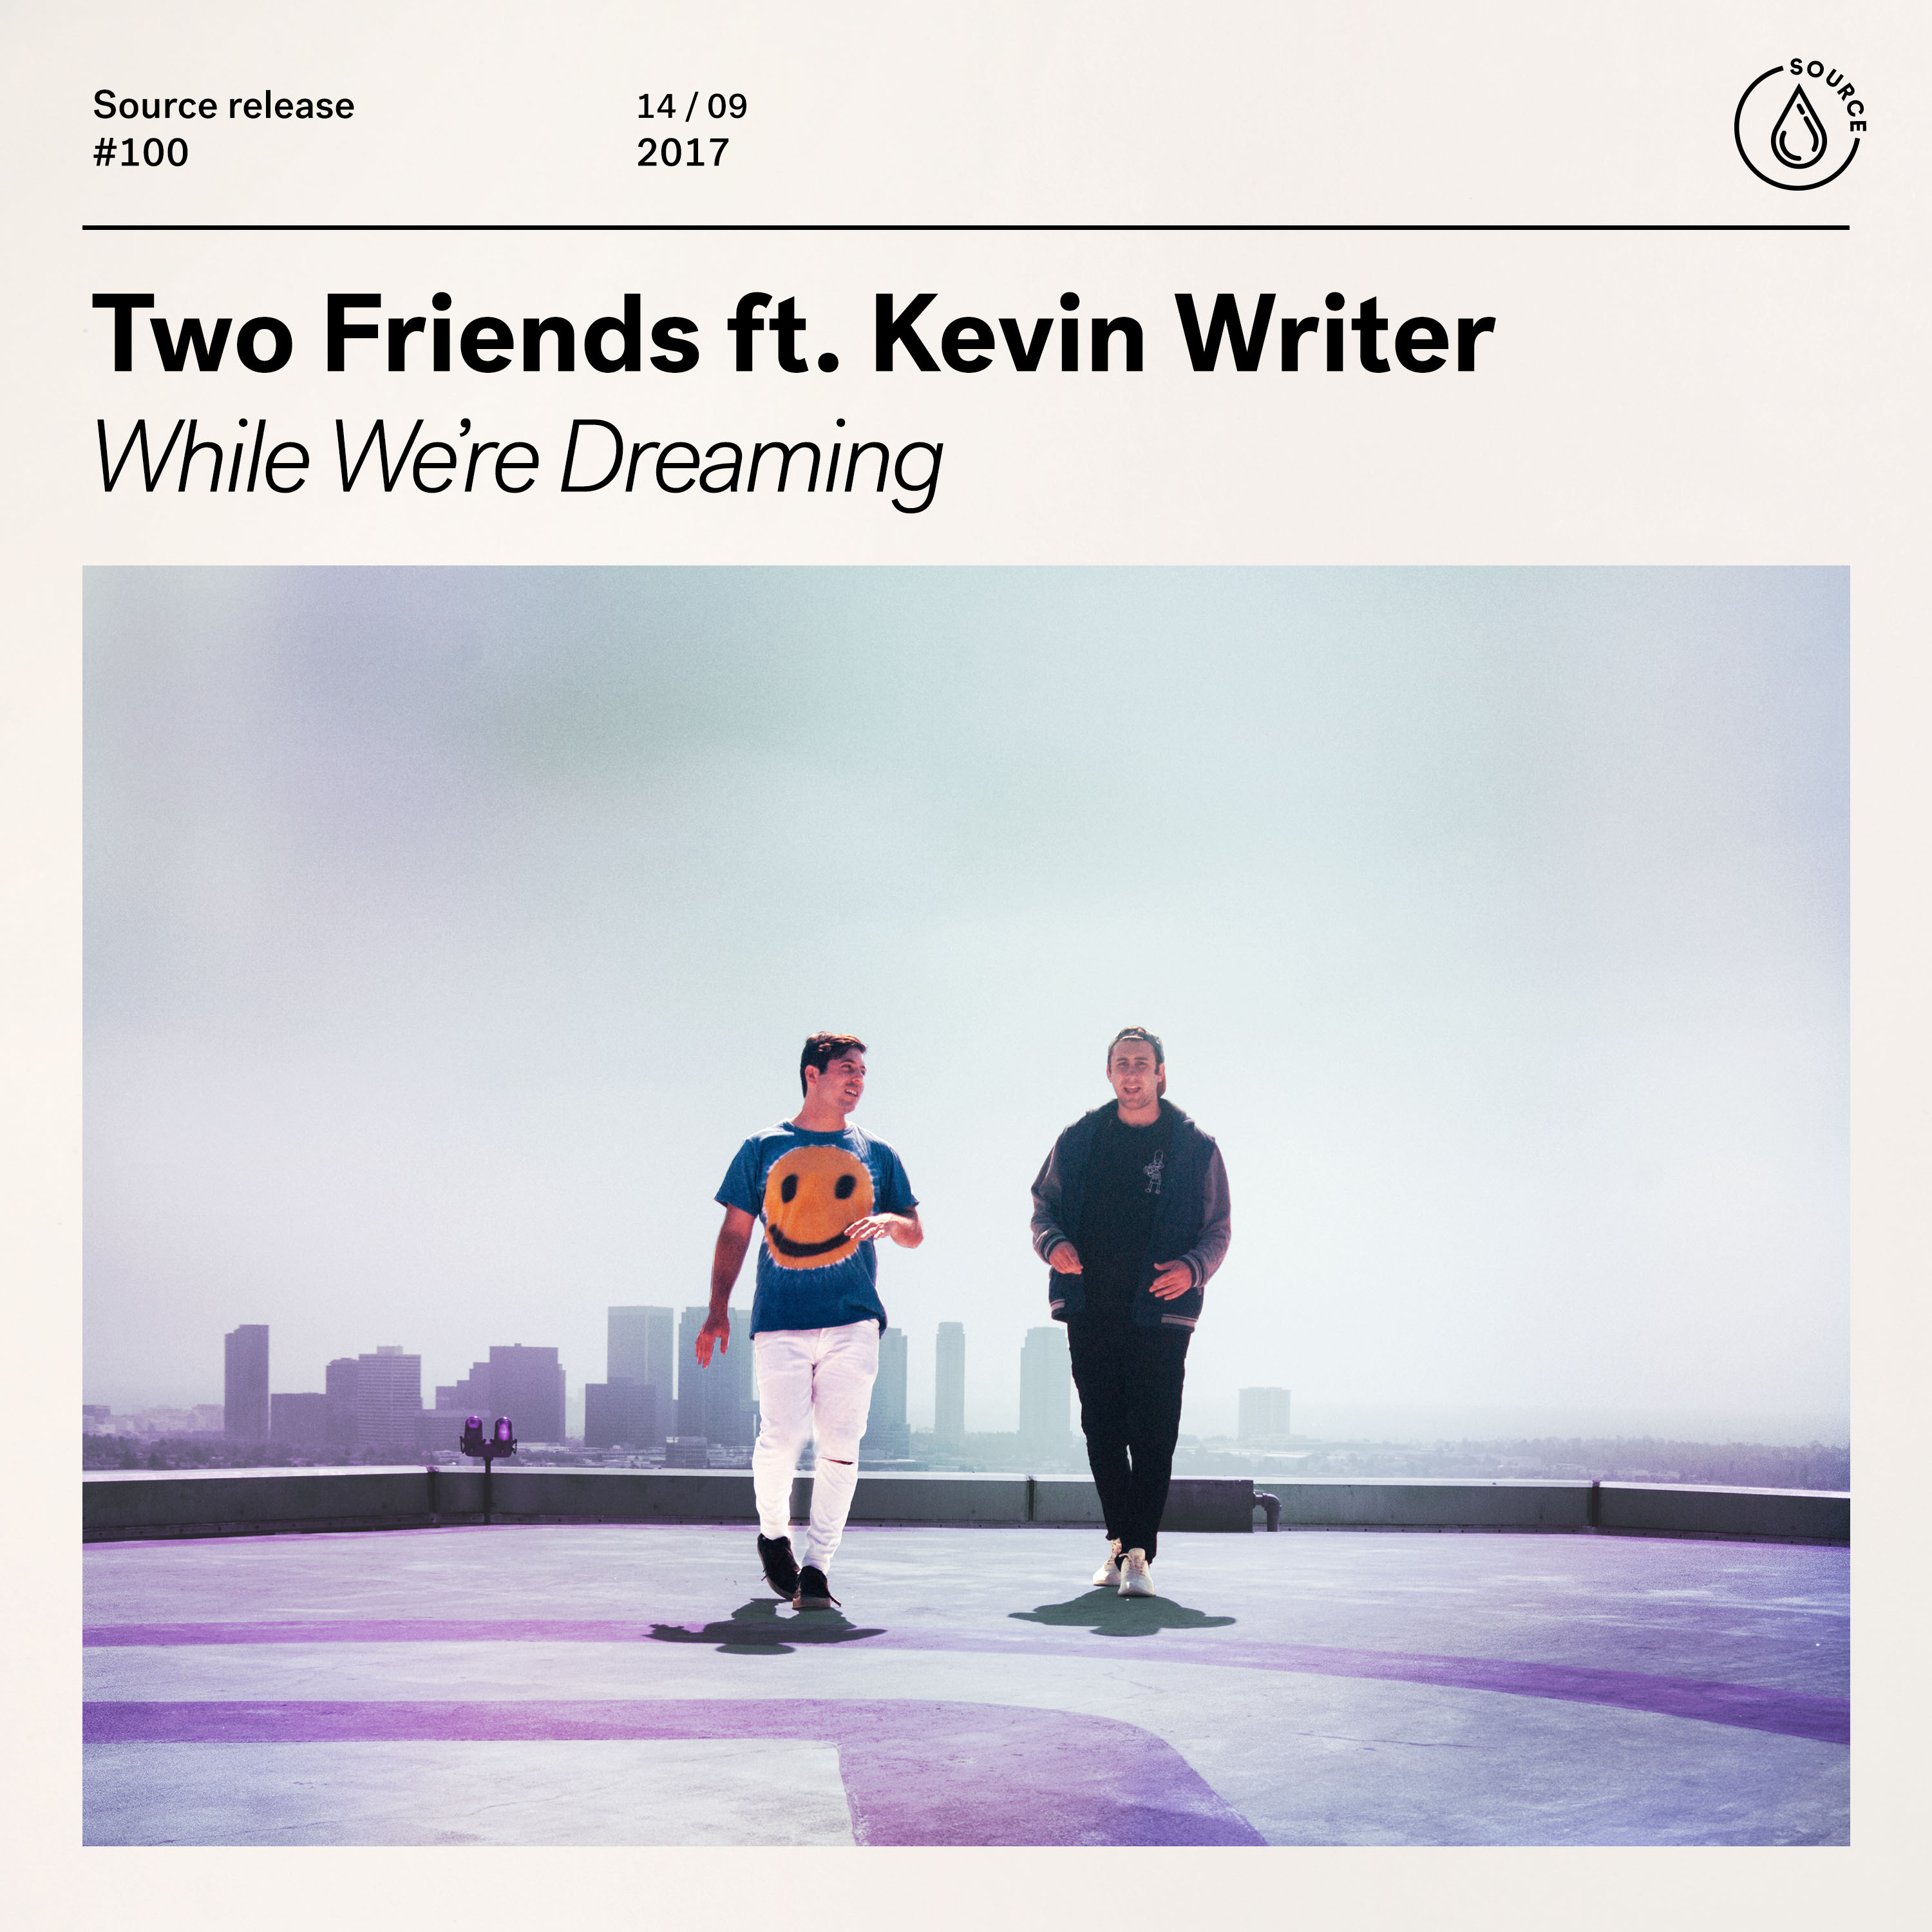 two_friends_ft_kevin_writer_while_were_dreaming.jpg